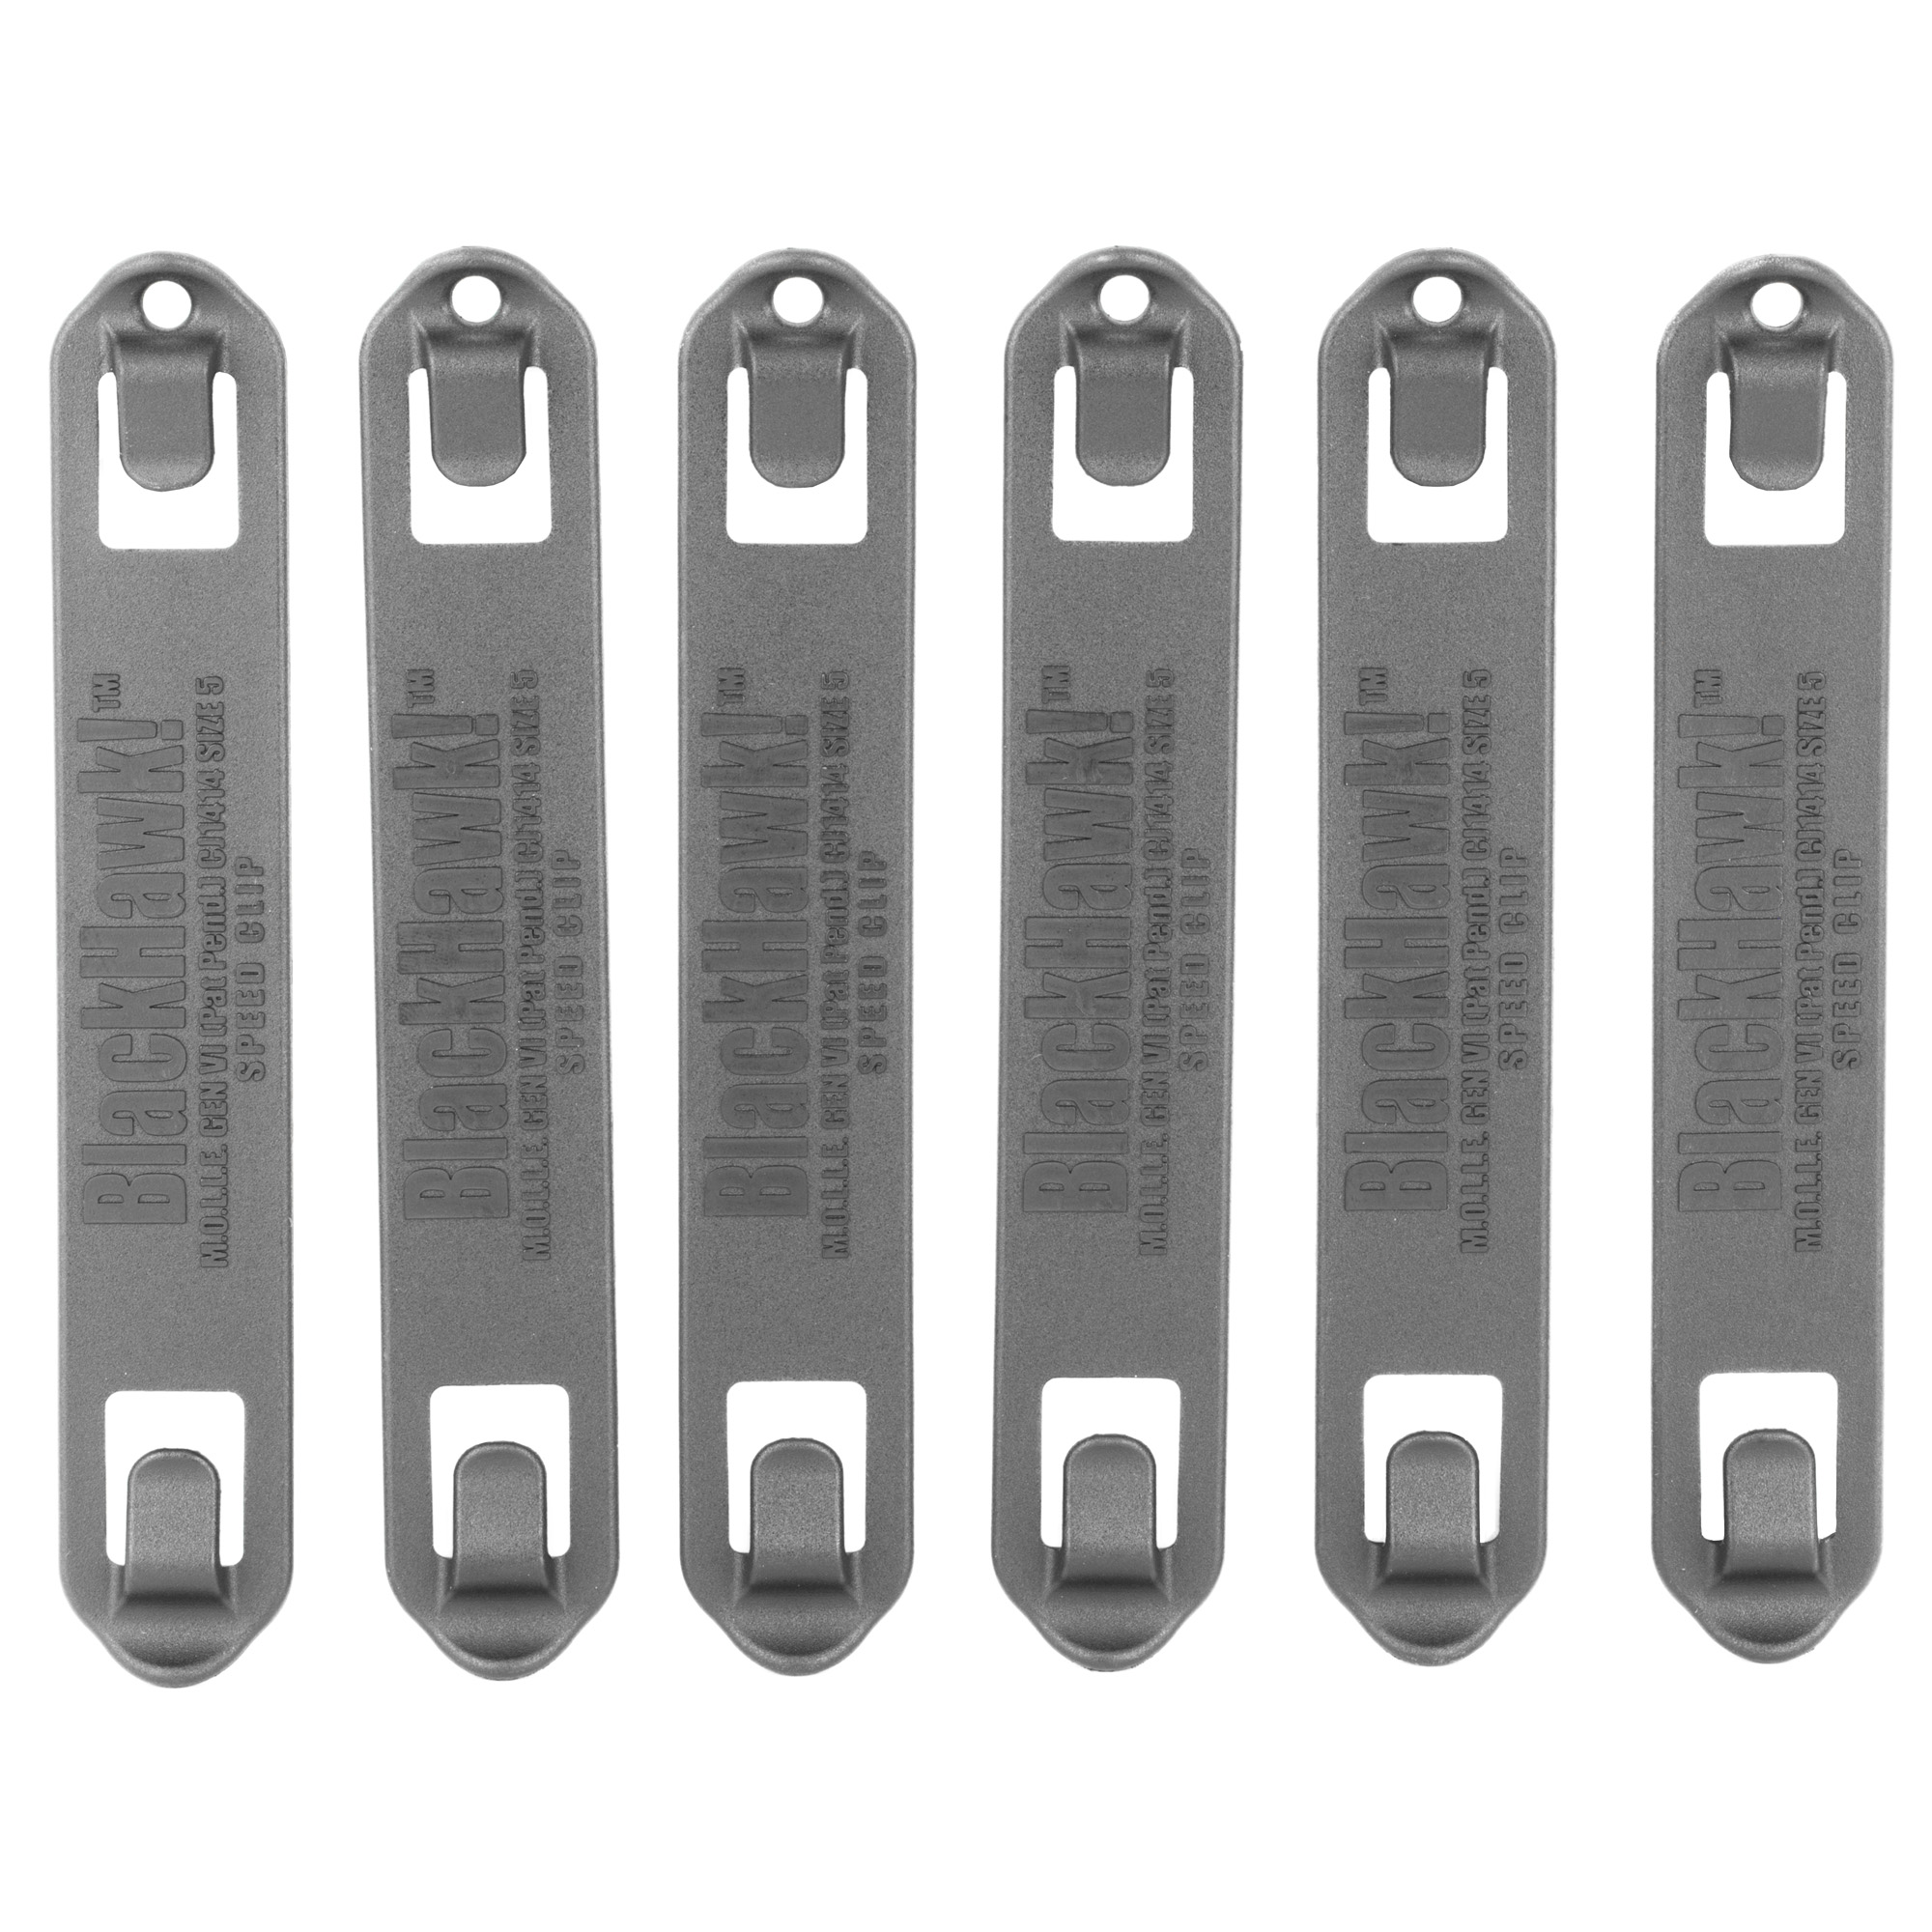 """These clips are designed to mount Speed Clip 3800 Series pouches to any S.T.R.I.K.E. or PALS/MOLLE platform"""" but can also be used with MOLLE 3700 Series or USA MOLLE 3900 Series pouches. Quickly and efficiently mount and disconnect pouches and other modular gear to any S.T.R.I.K.E. or PALS/MOLLE platform."""